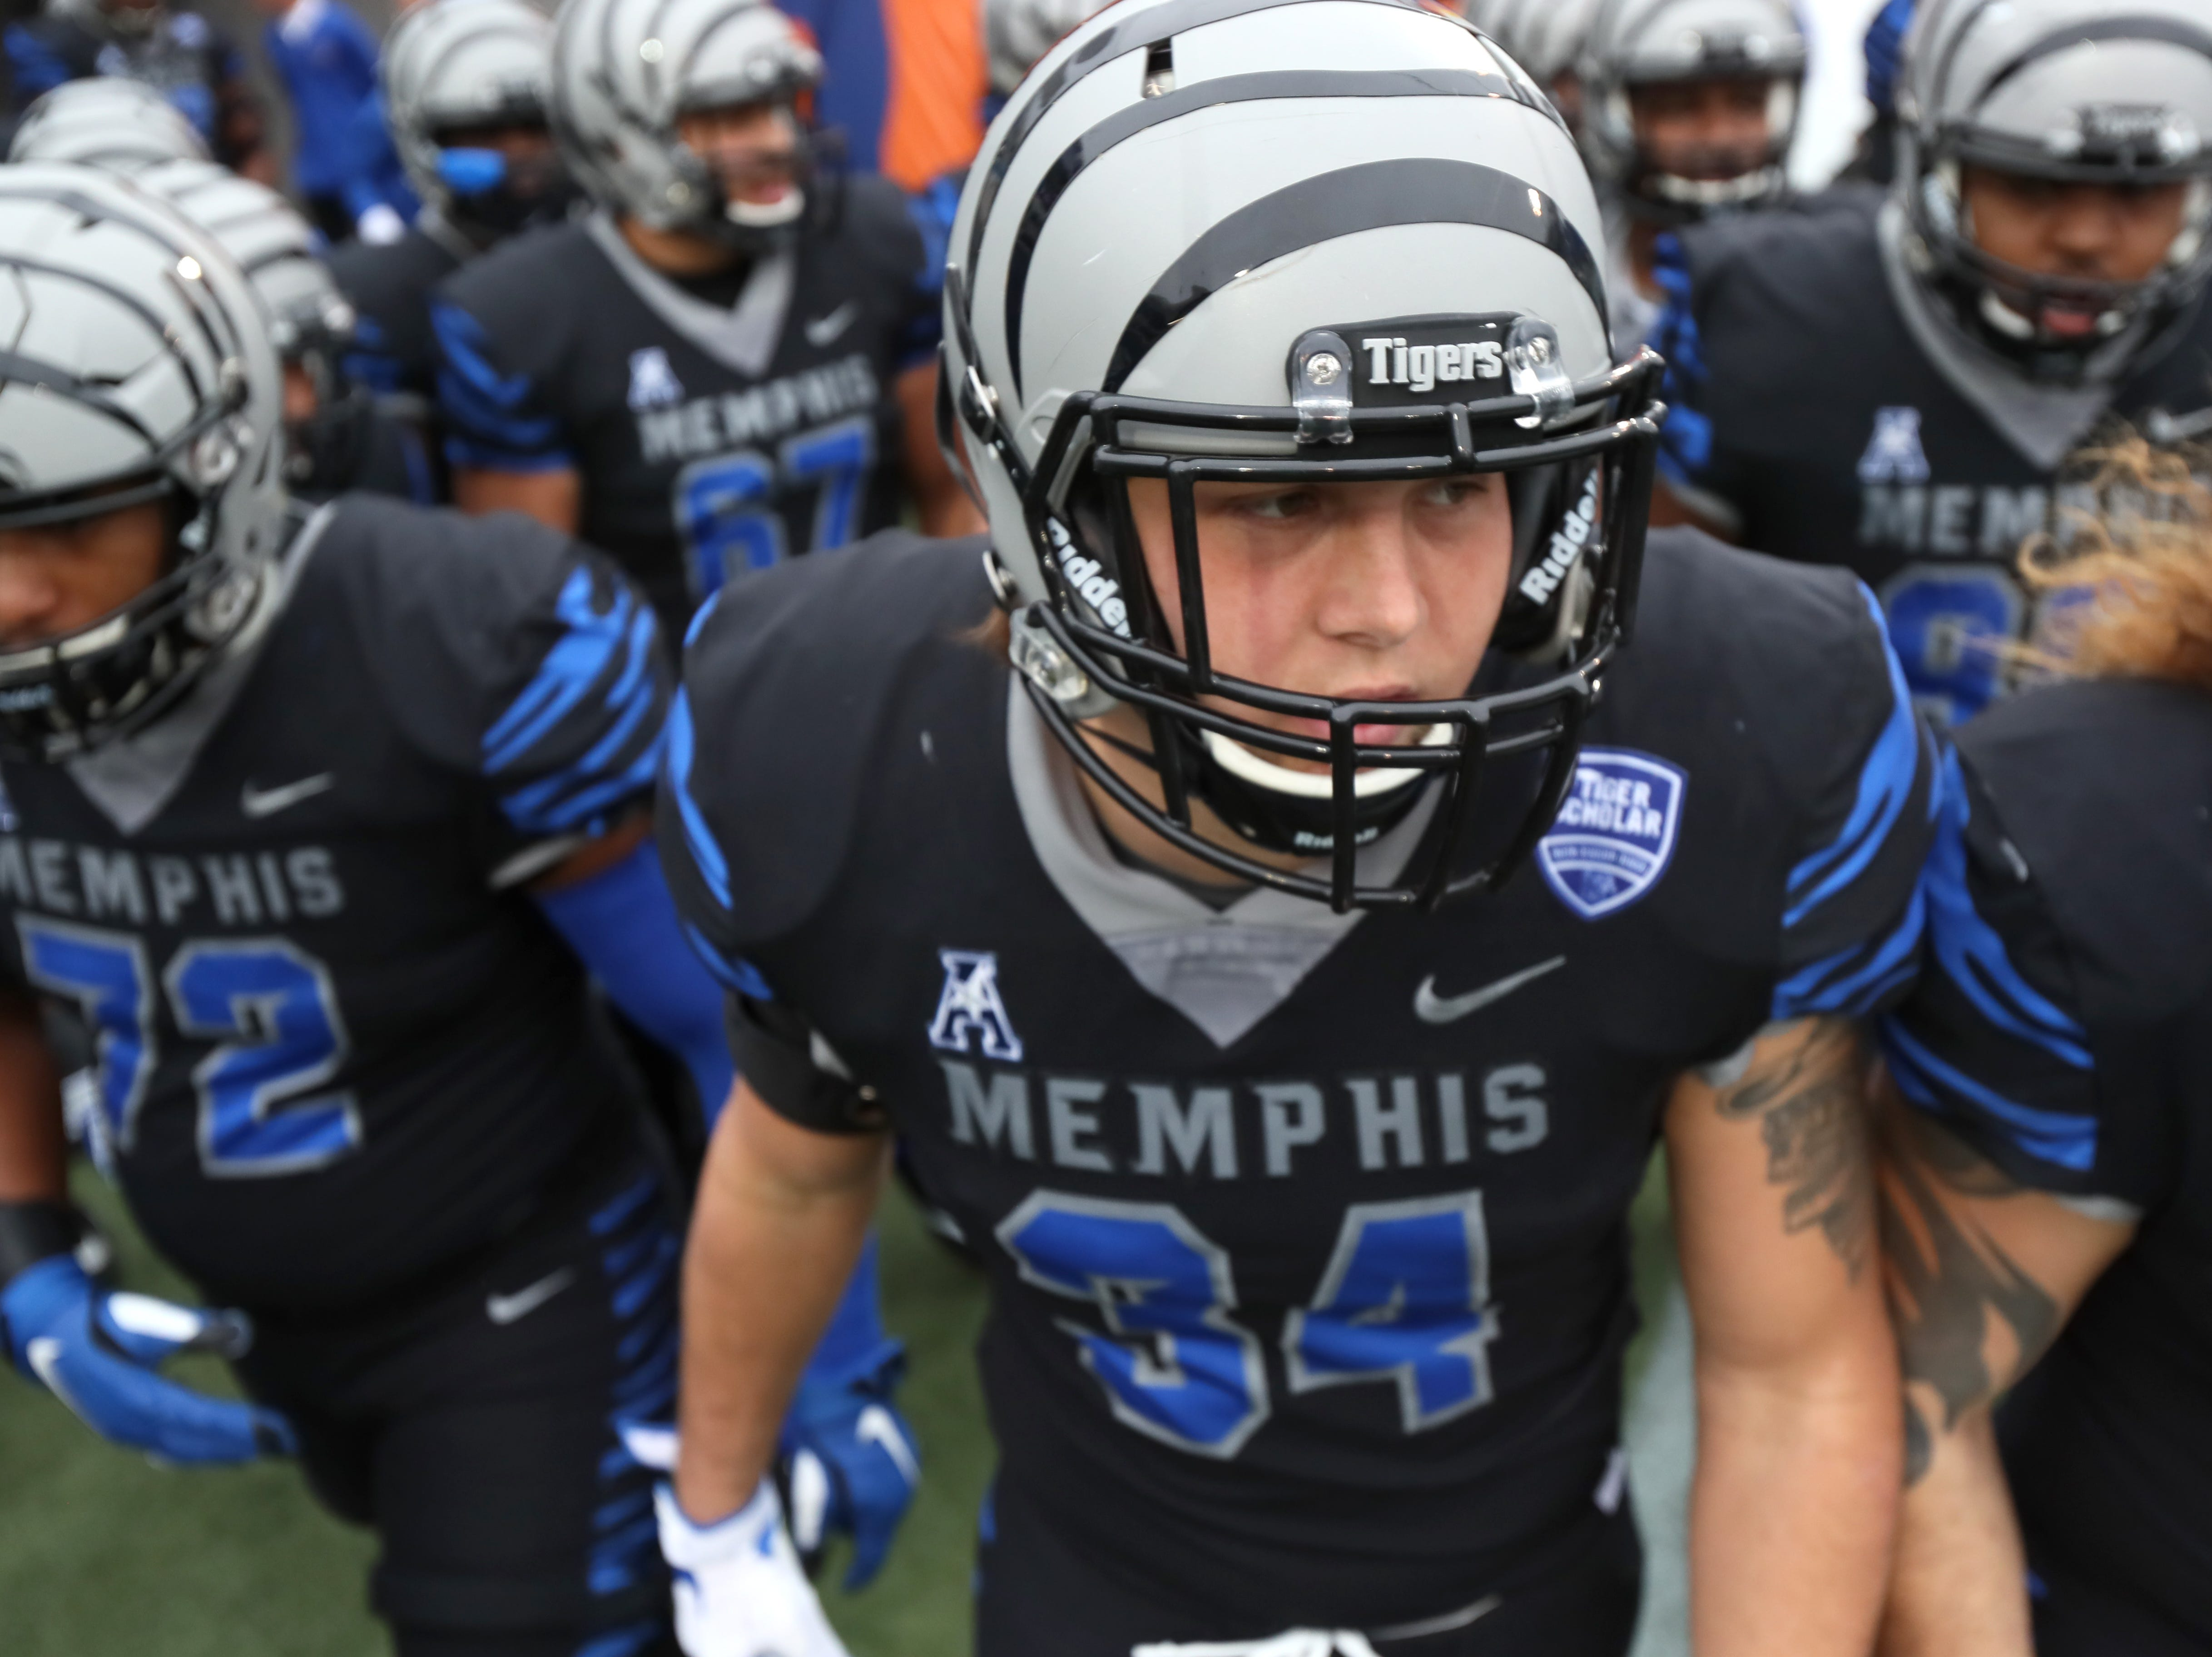 Memphis Tigers' Jackson Dillon heads out to the field to warm up before their game against the Houston Cougars at the Liberty Bowl on Friday, Nov. 23, 2018.